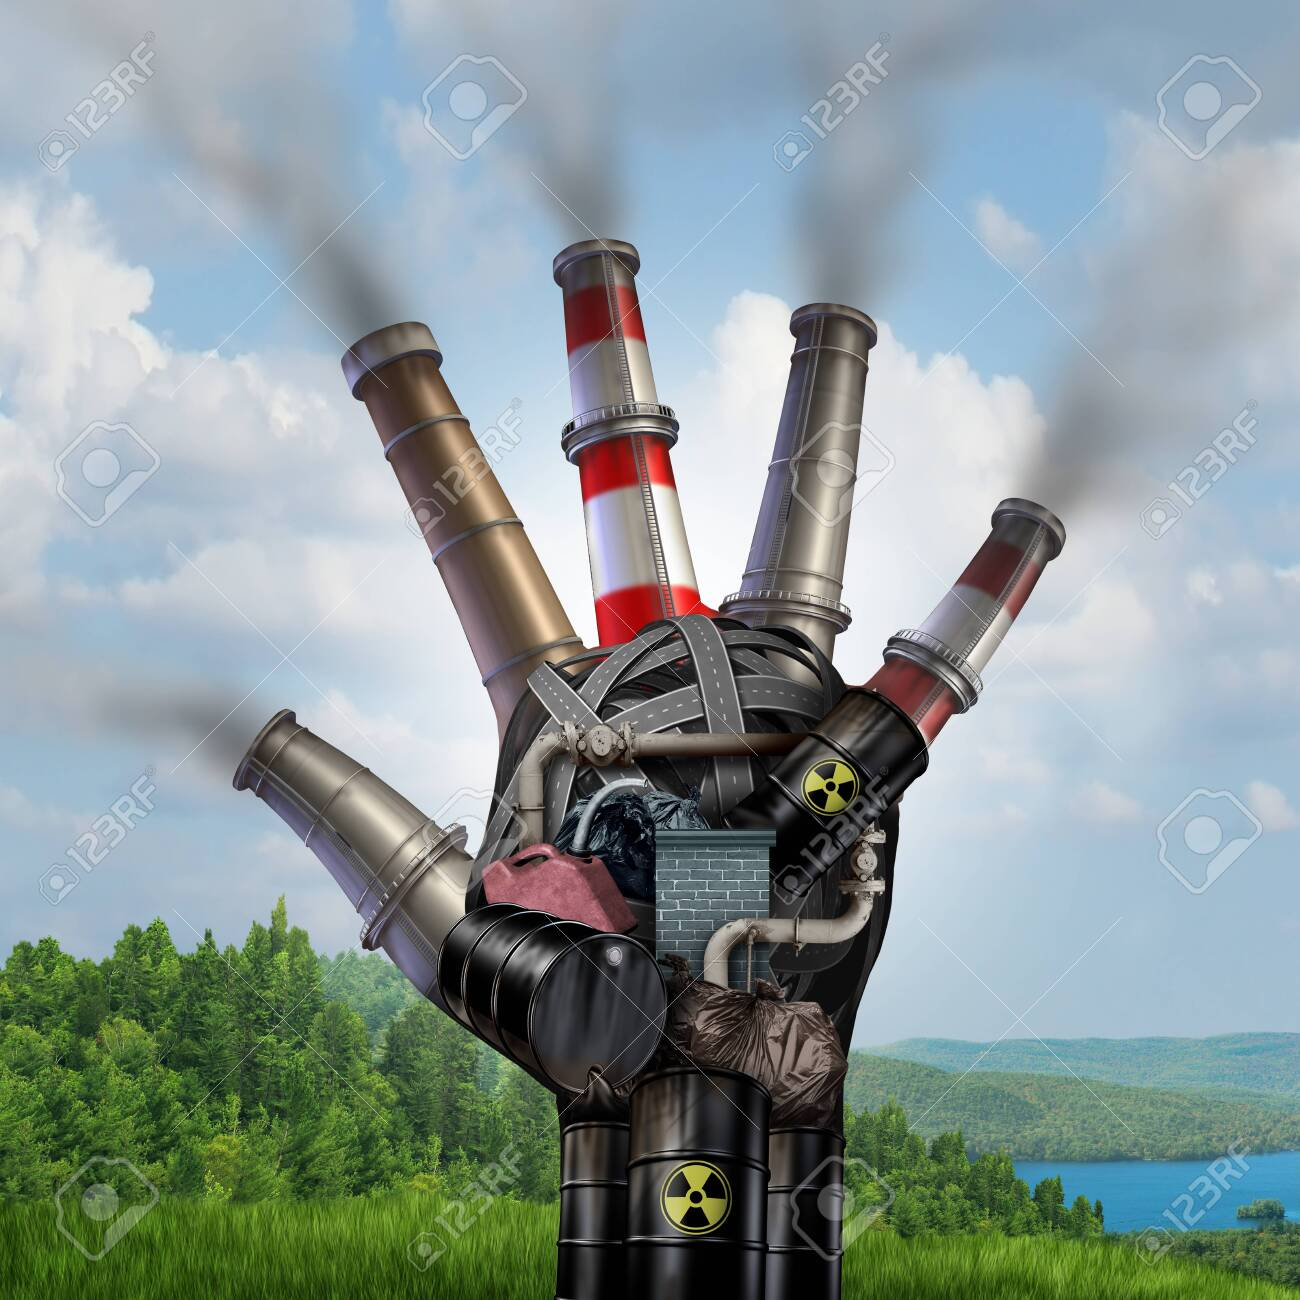 Danger of Climate change and extreme weather concept with a polluted dirty industrial hand destroying the fragile green natural landscape with 3D illustration elements. - 124773490